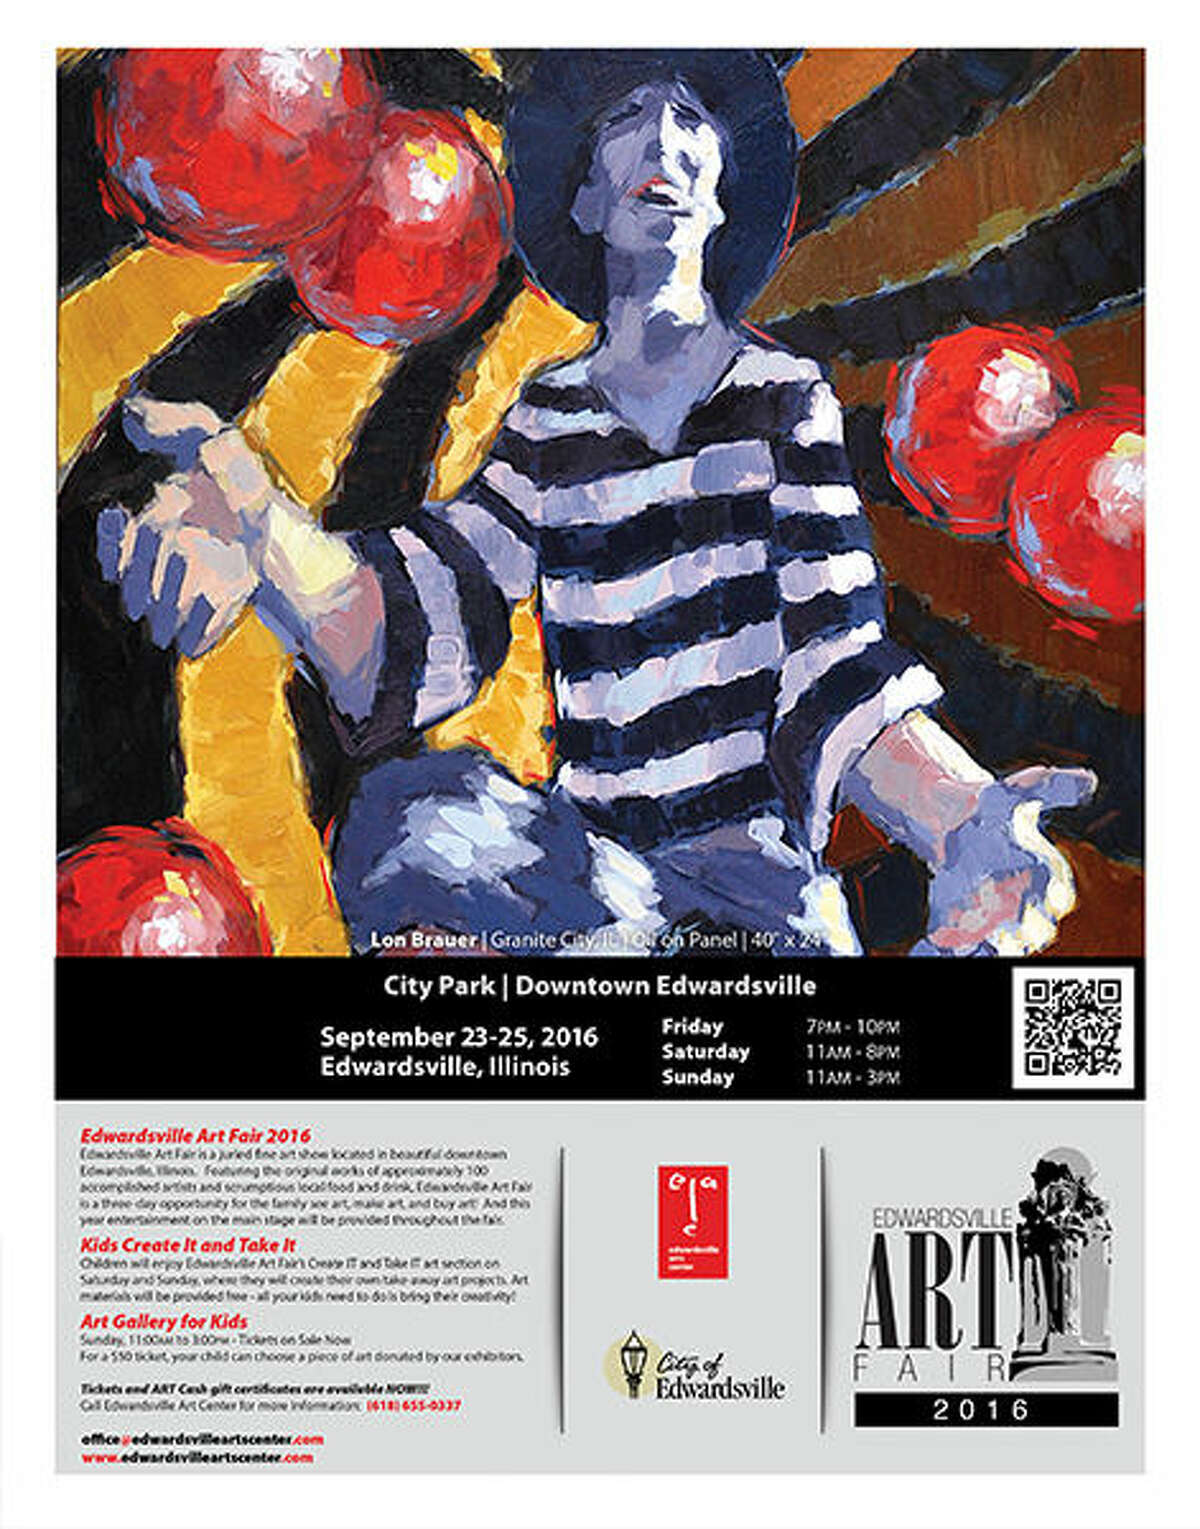 The is the poster for the 2016 Edwardsville Art Fair. The event begins Friday in City Park. Activities will continue Saturday and Sunday at the event, which is presented by the Edwardsville Arts Center.